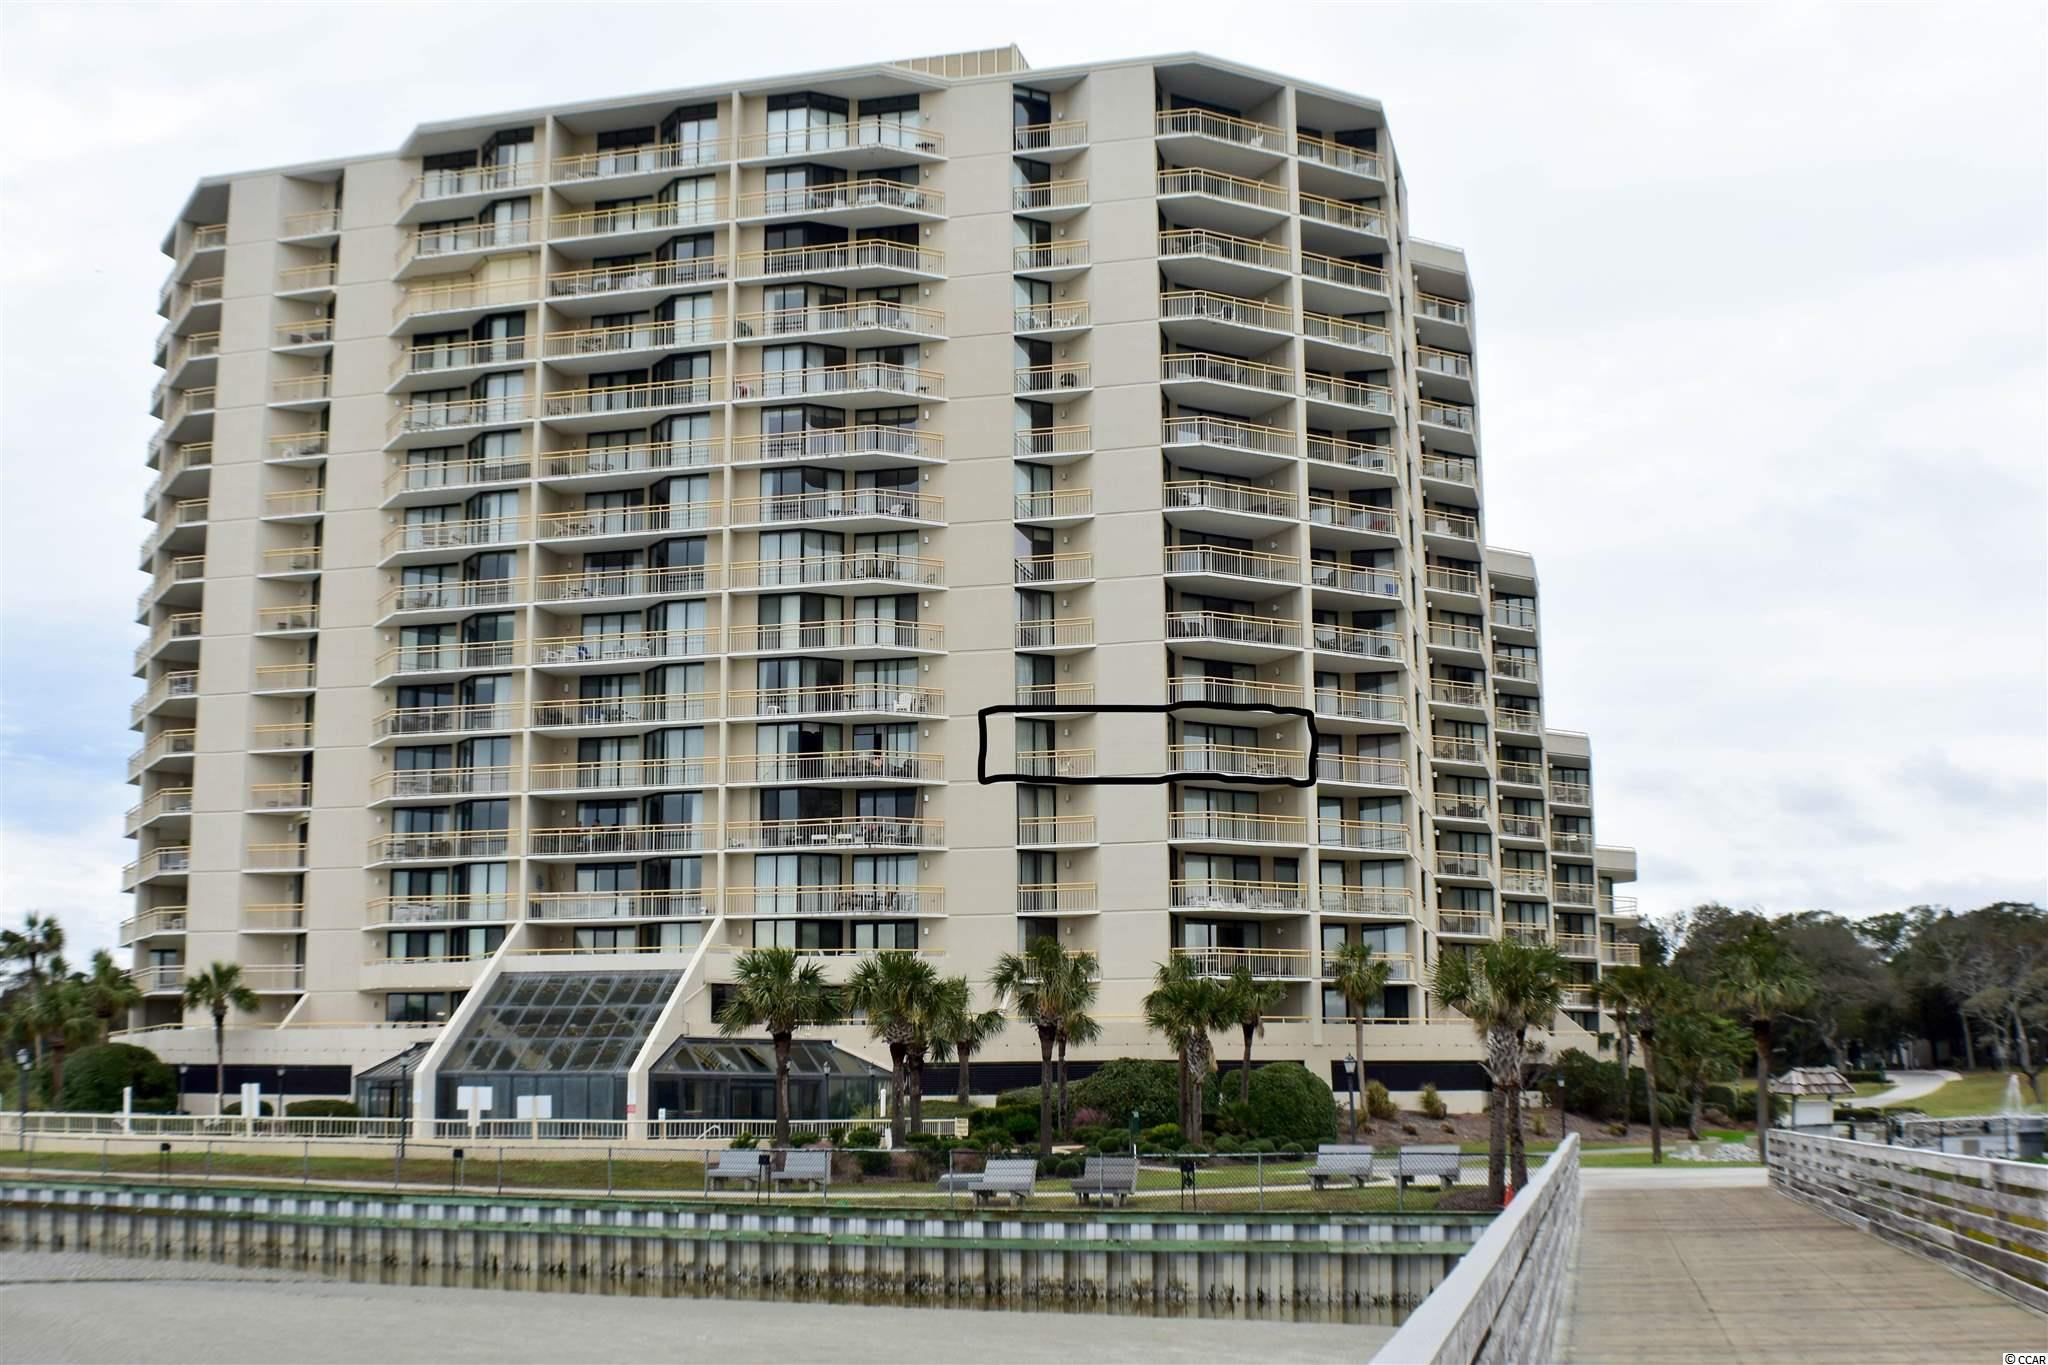 2 BR/ 2 BA recently updated oceanfront condo. Luxury vinyl plank and tile floors throughout. Ocean Creek has 57-acres of park-like grounds. 24-hour gated security, tennis center, pickleball court, putting green, multiple outdoor pools, and an indoor pool with whirlpool. The community boasts a wonderful oceanfront beach club with a snack bar and grill open in season, sand volleyball court, outdoor pool, playground, lockers, and restrooms. All figs. & sq. ft. approximate.